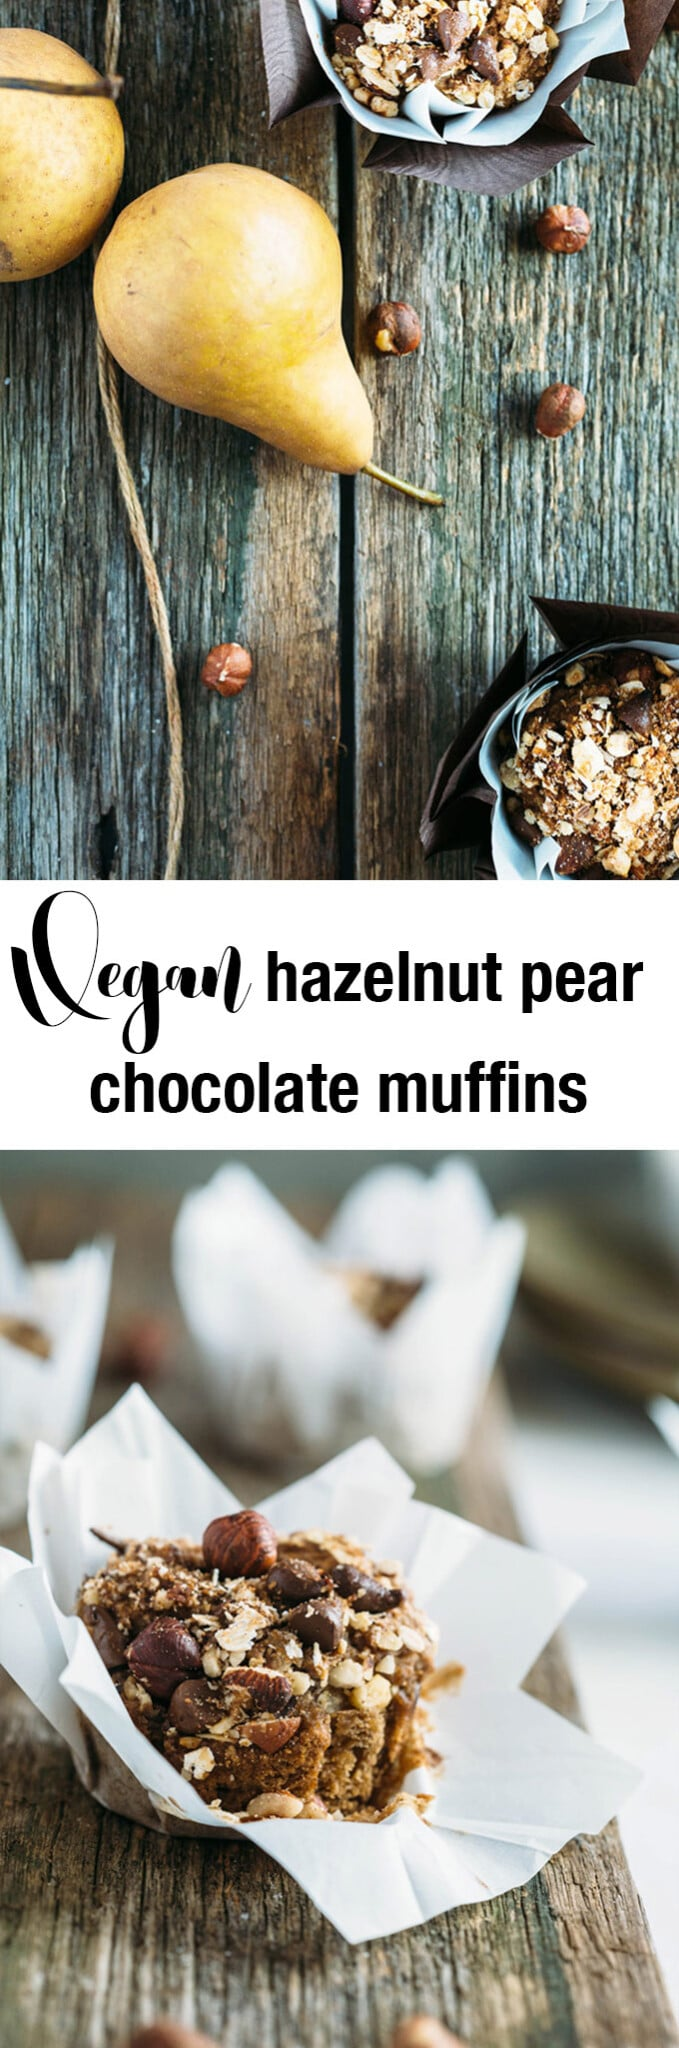 vegan-hazelnut-pear-chocolate-muffins-pin